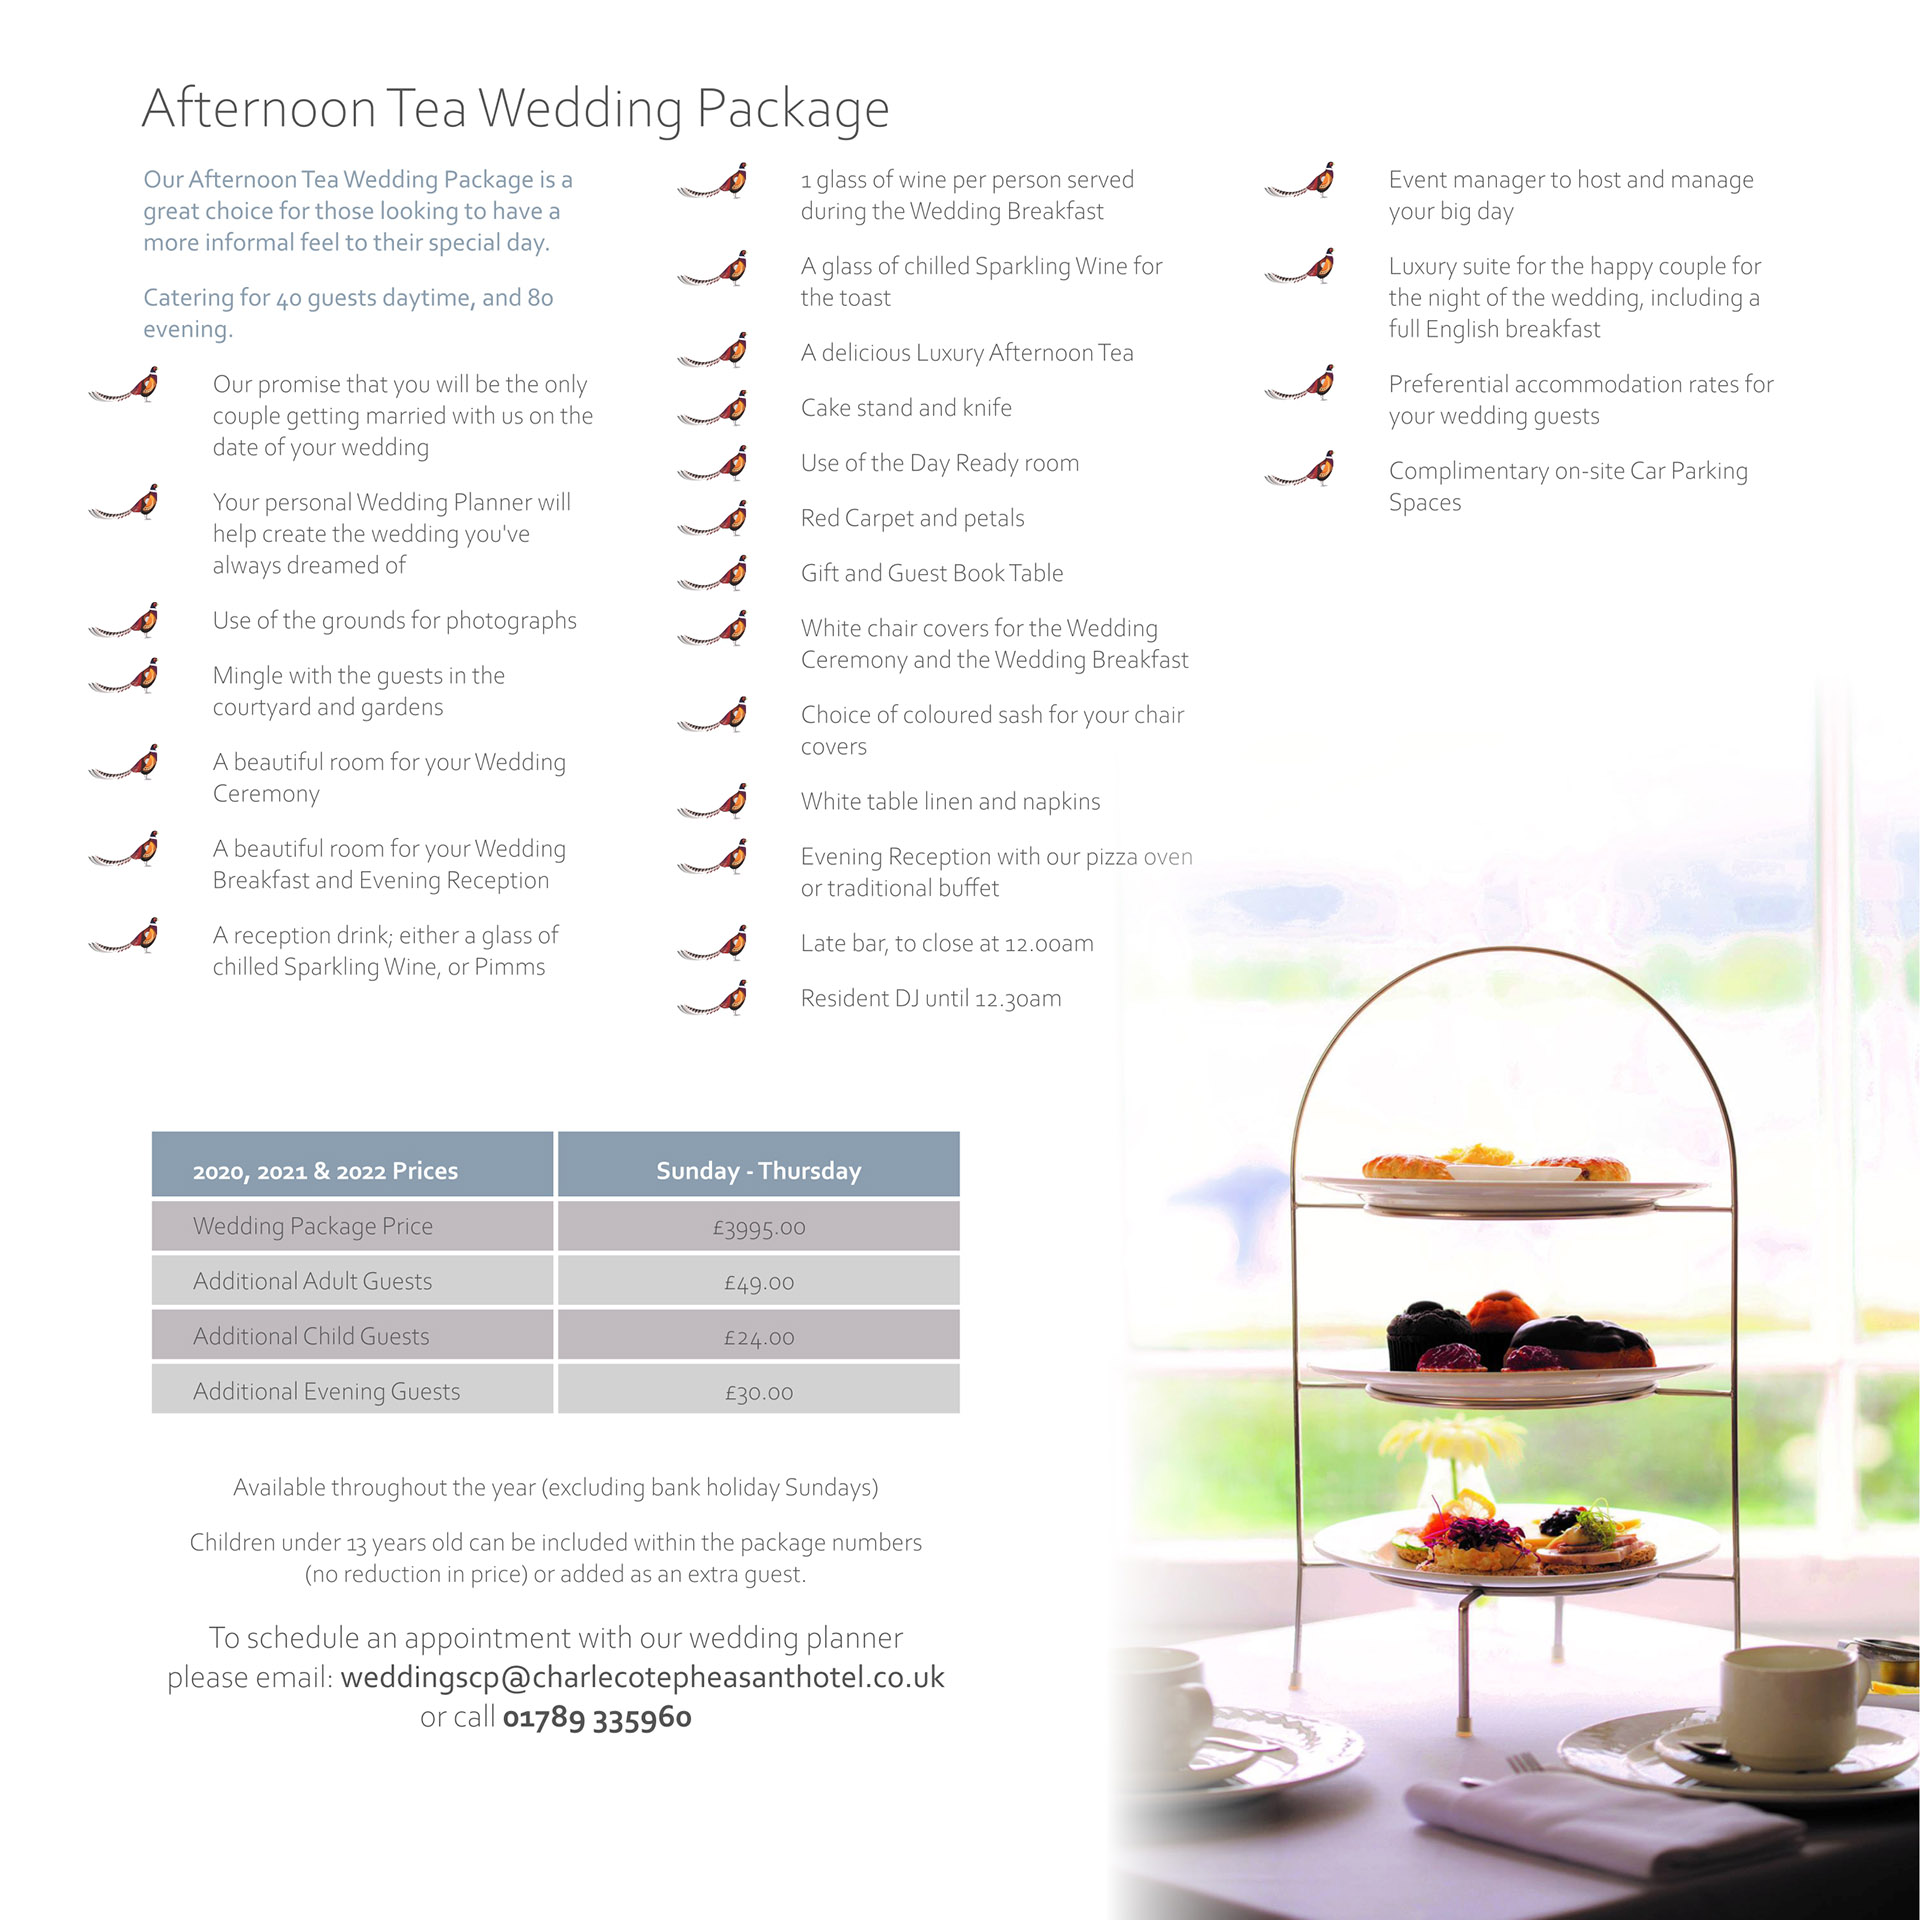 Afternoon tea wedding package at the Charlecote Pheasant Hotel